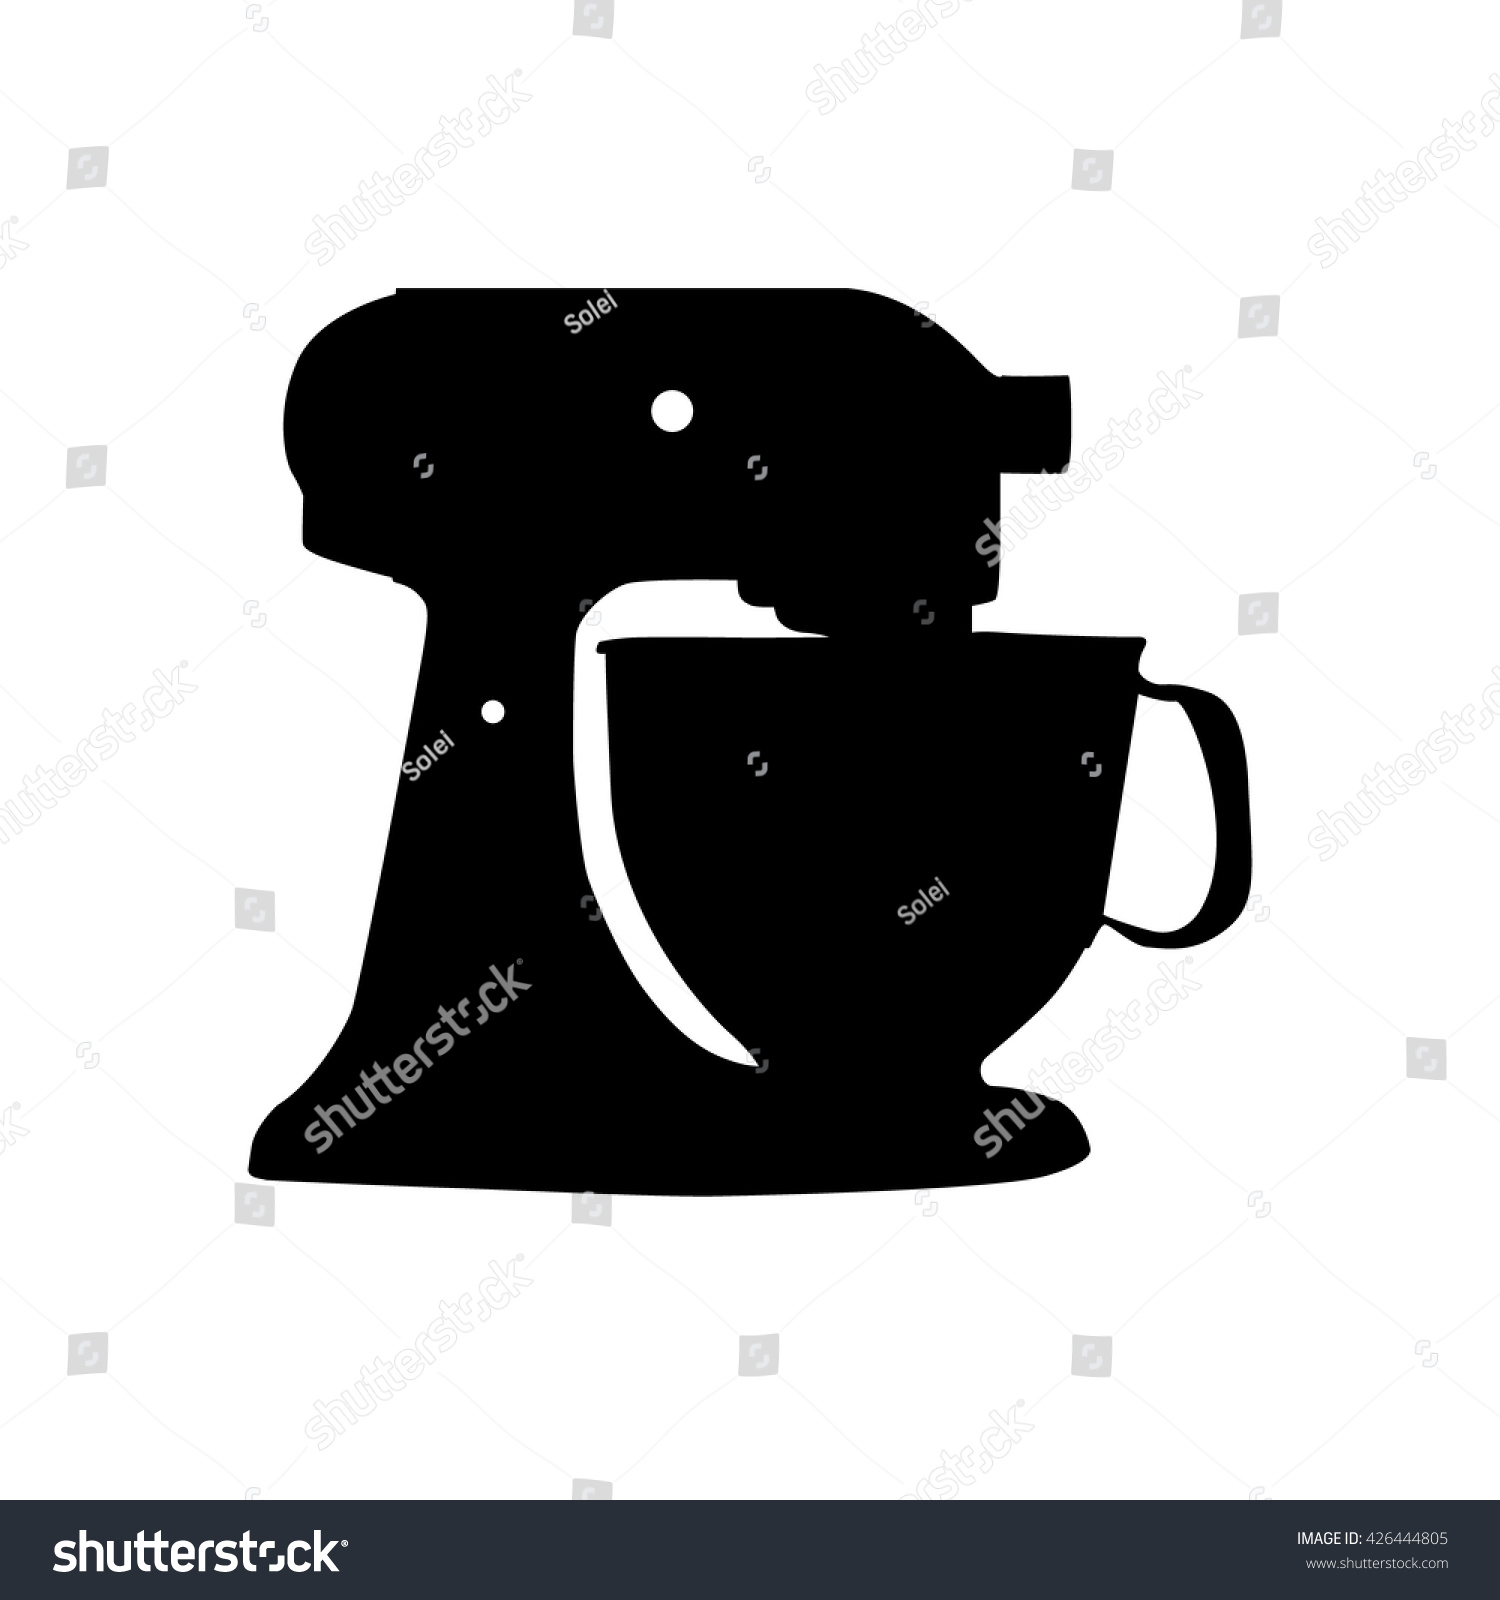 Hand Mixer Silhouette ~ Mixer with cup silhouette isolated stock vector